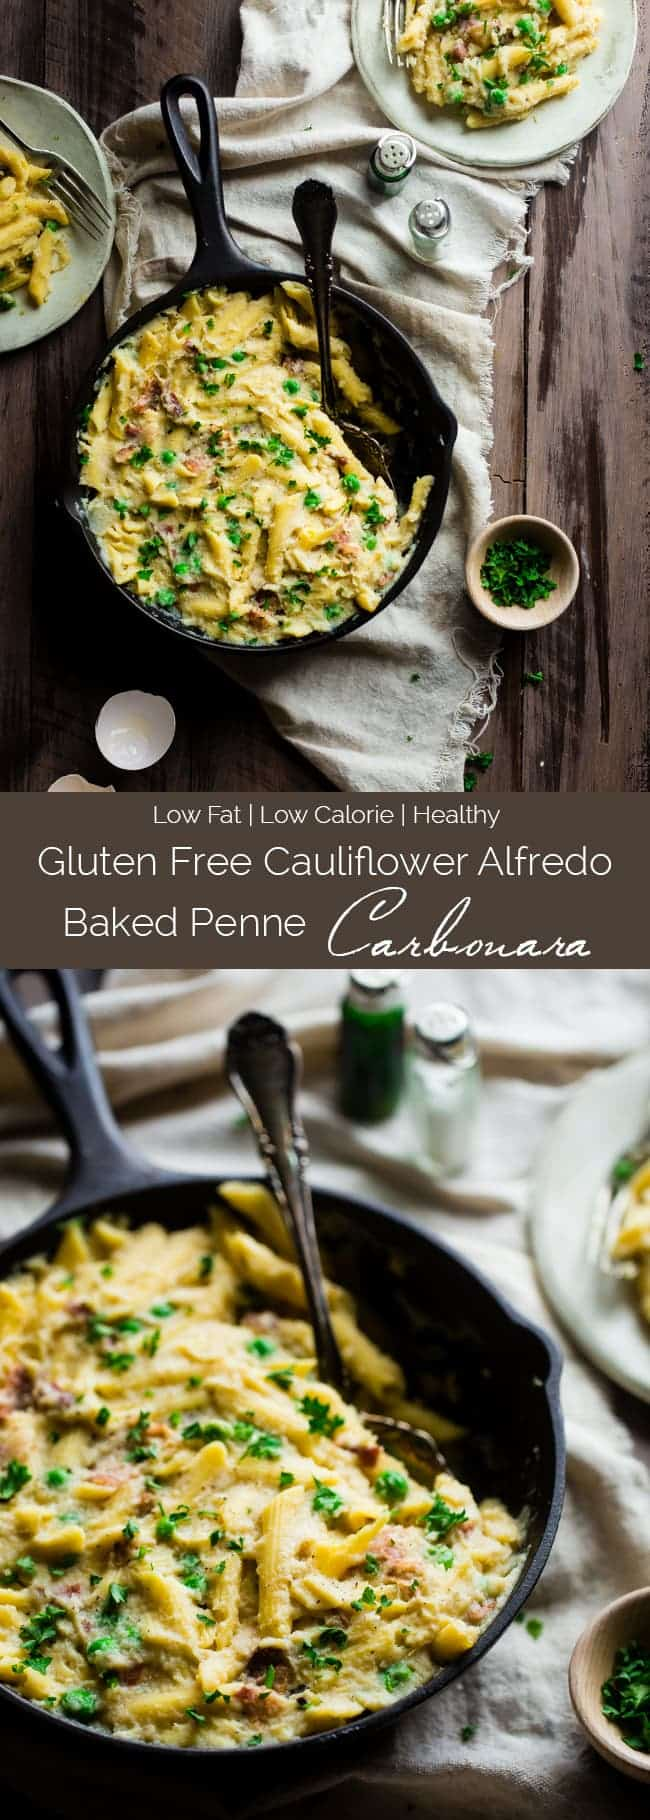 Cauliflower Alfredo Baked Penne Carbonara Food Faith Fitness